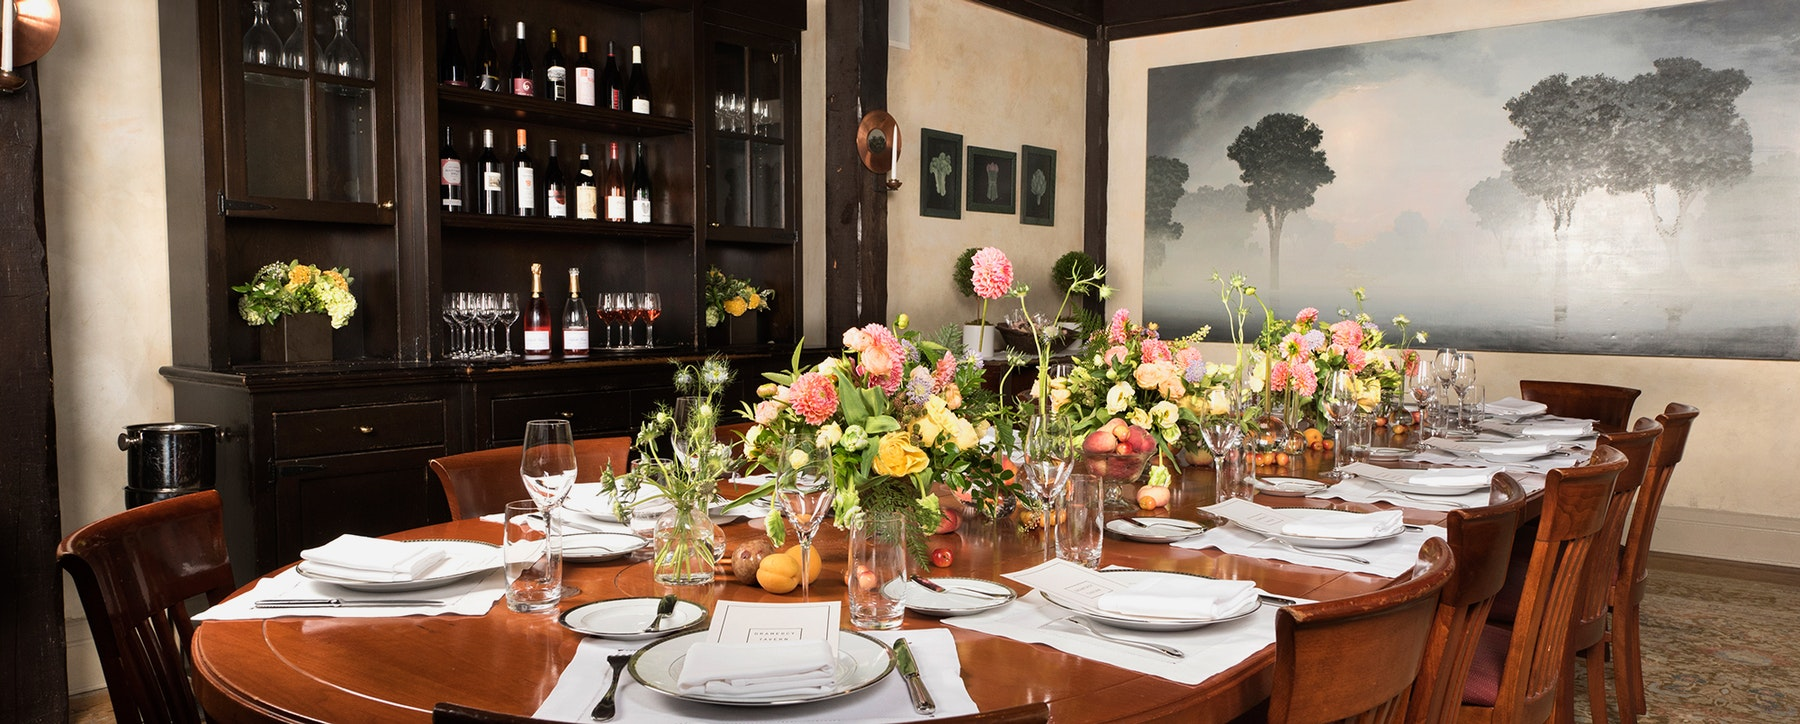 Private Dining Rooms Prepossessing Private Dining  Seasonal Fine Dining In New York City Decorating Design